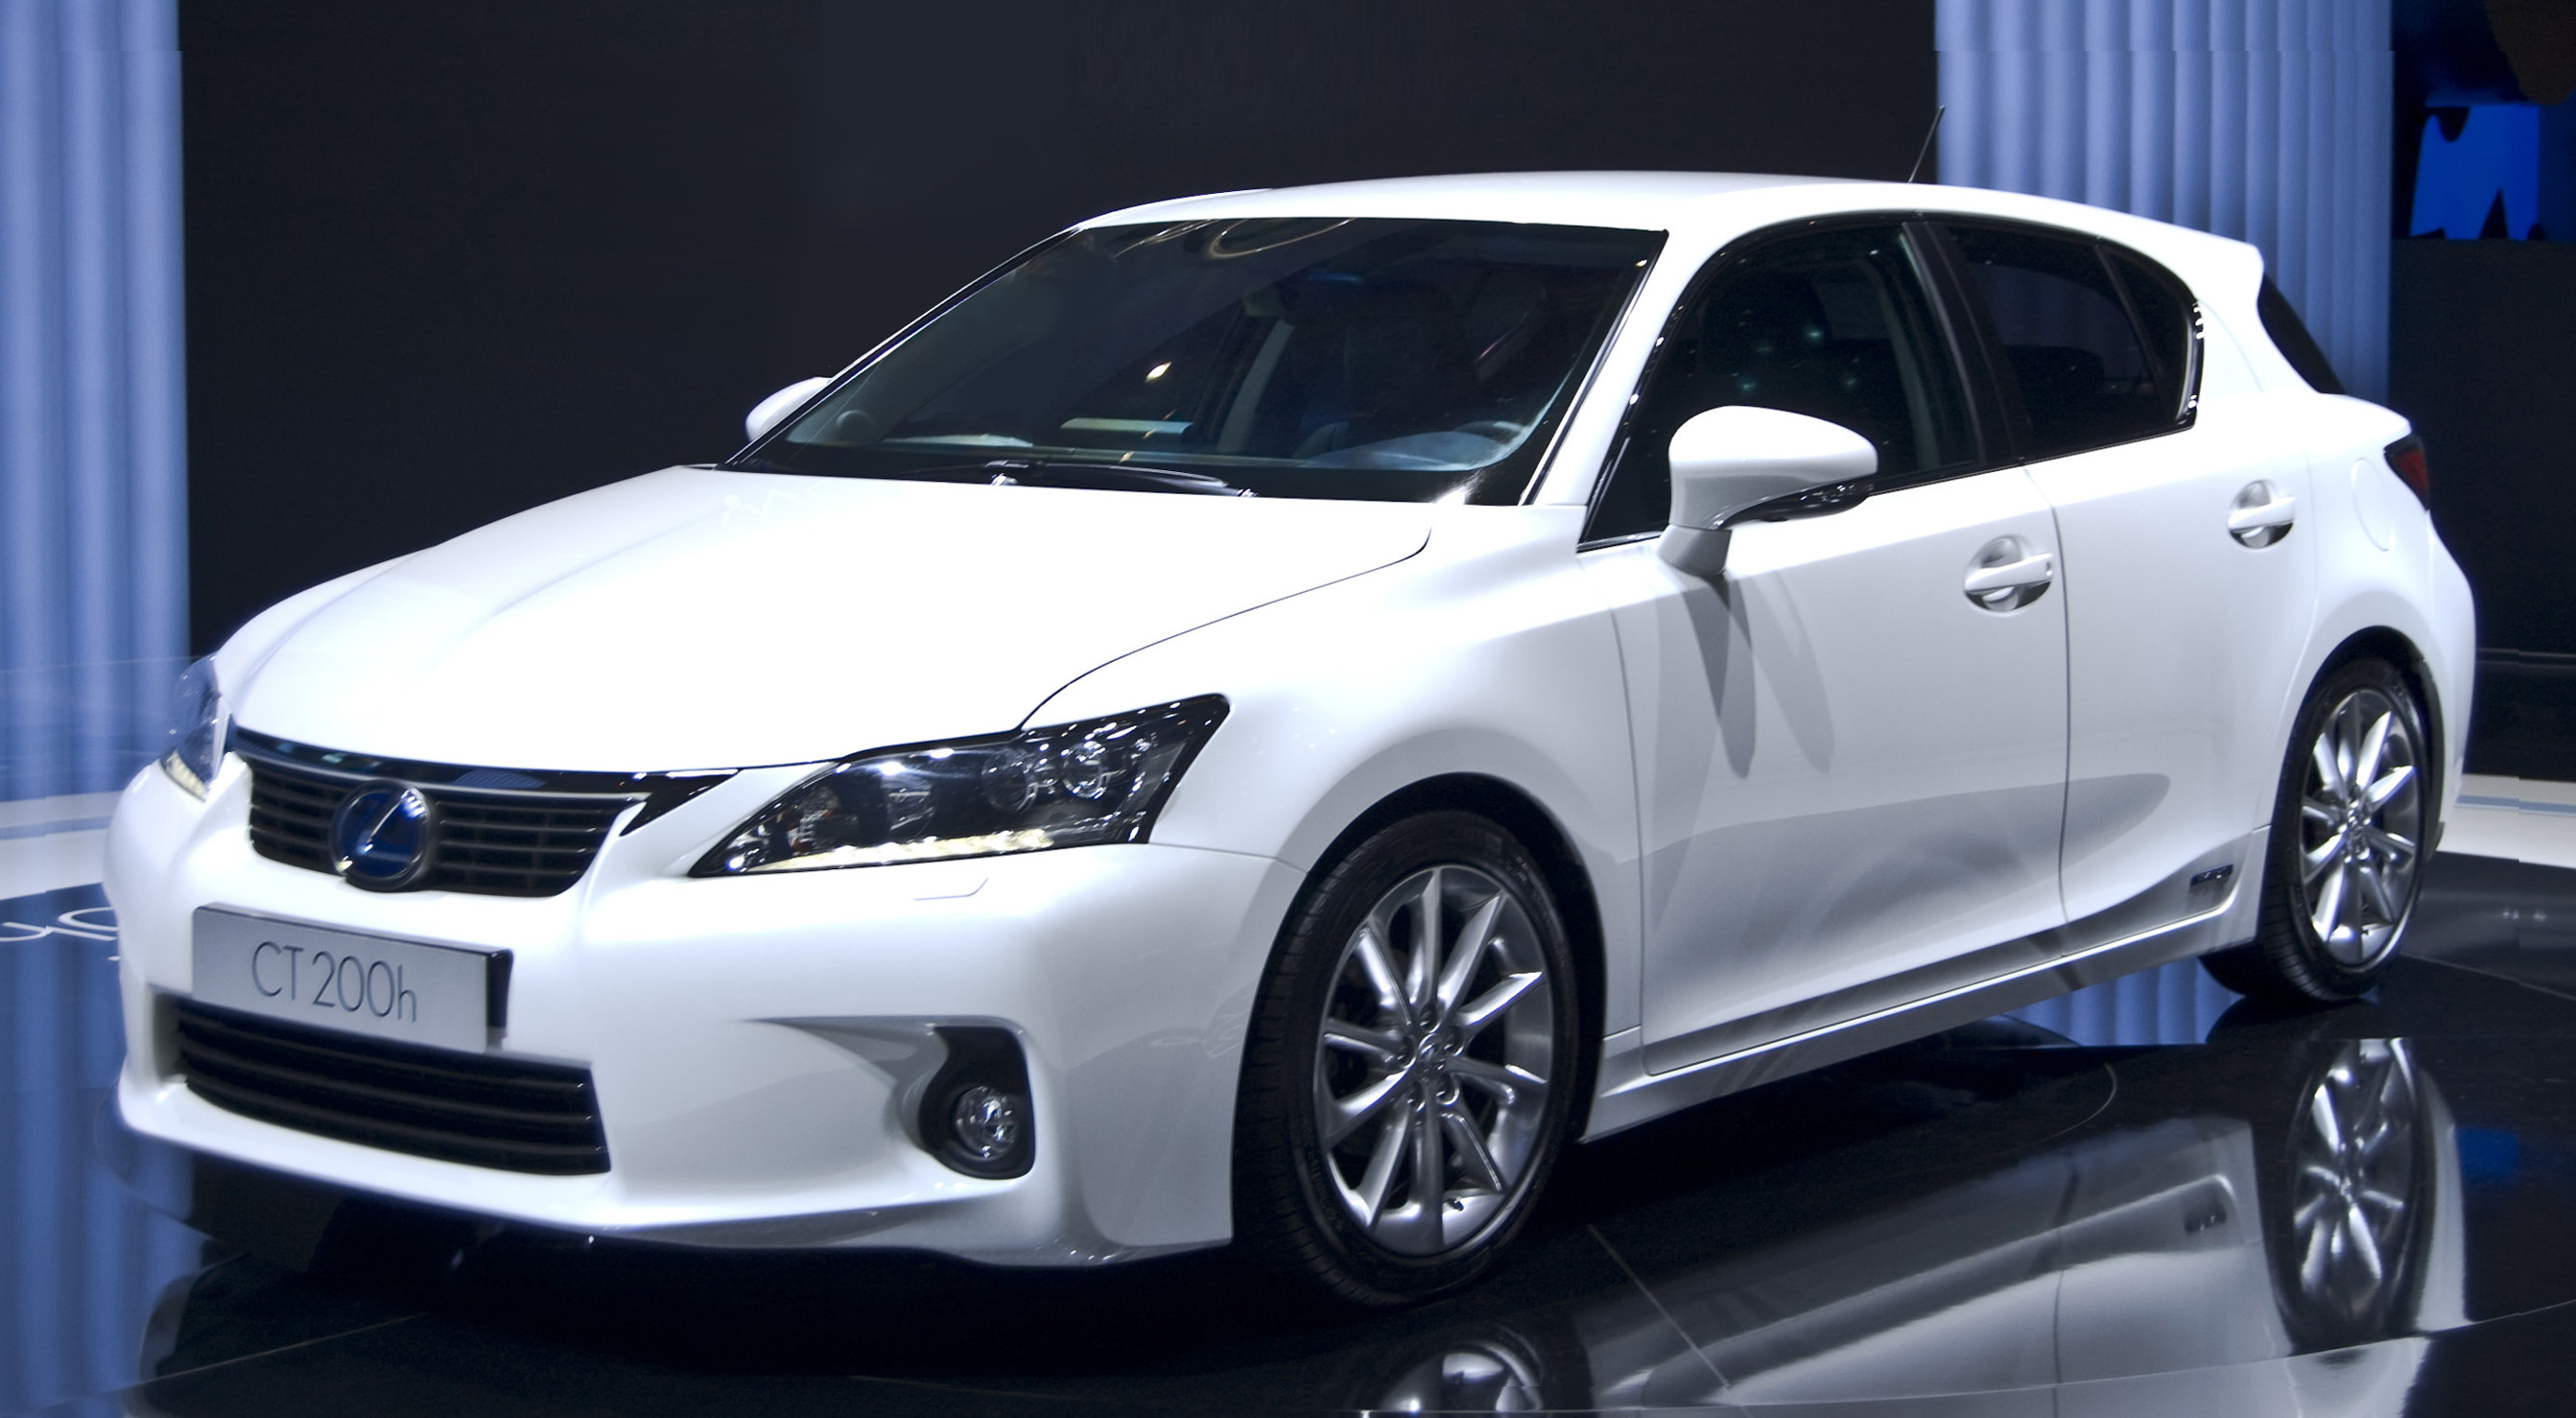 Lexus Ct 200h Reviews Lexus Ct 200h Car Reviews